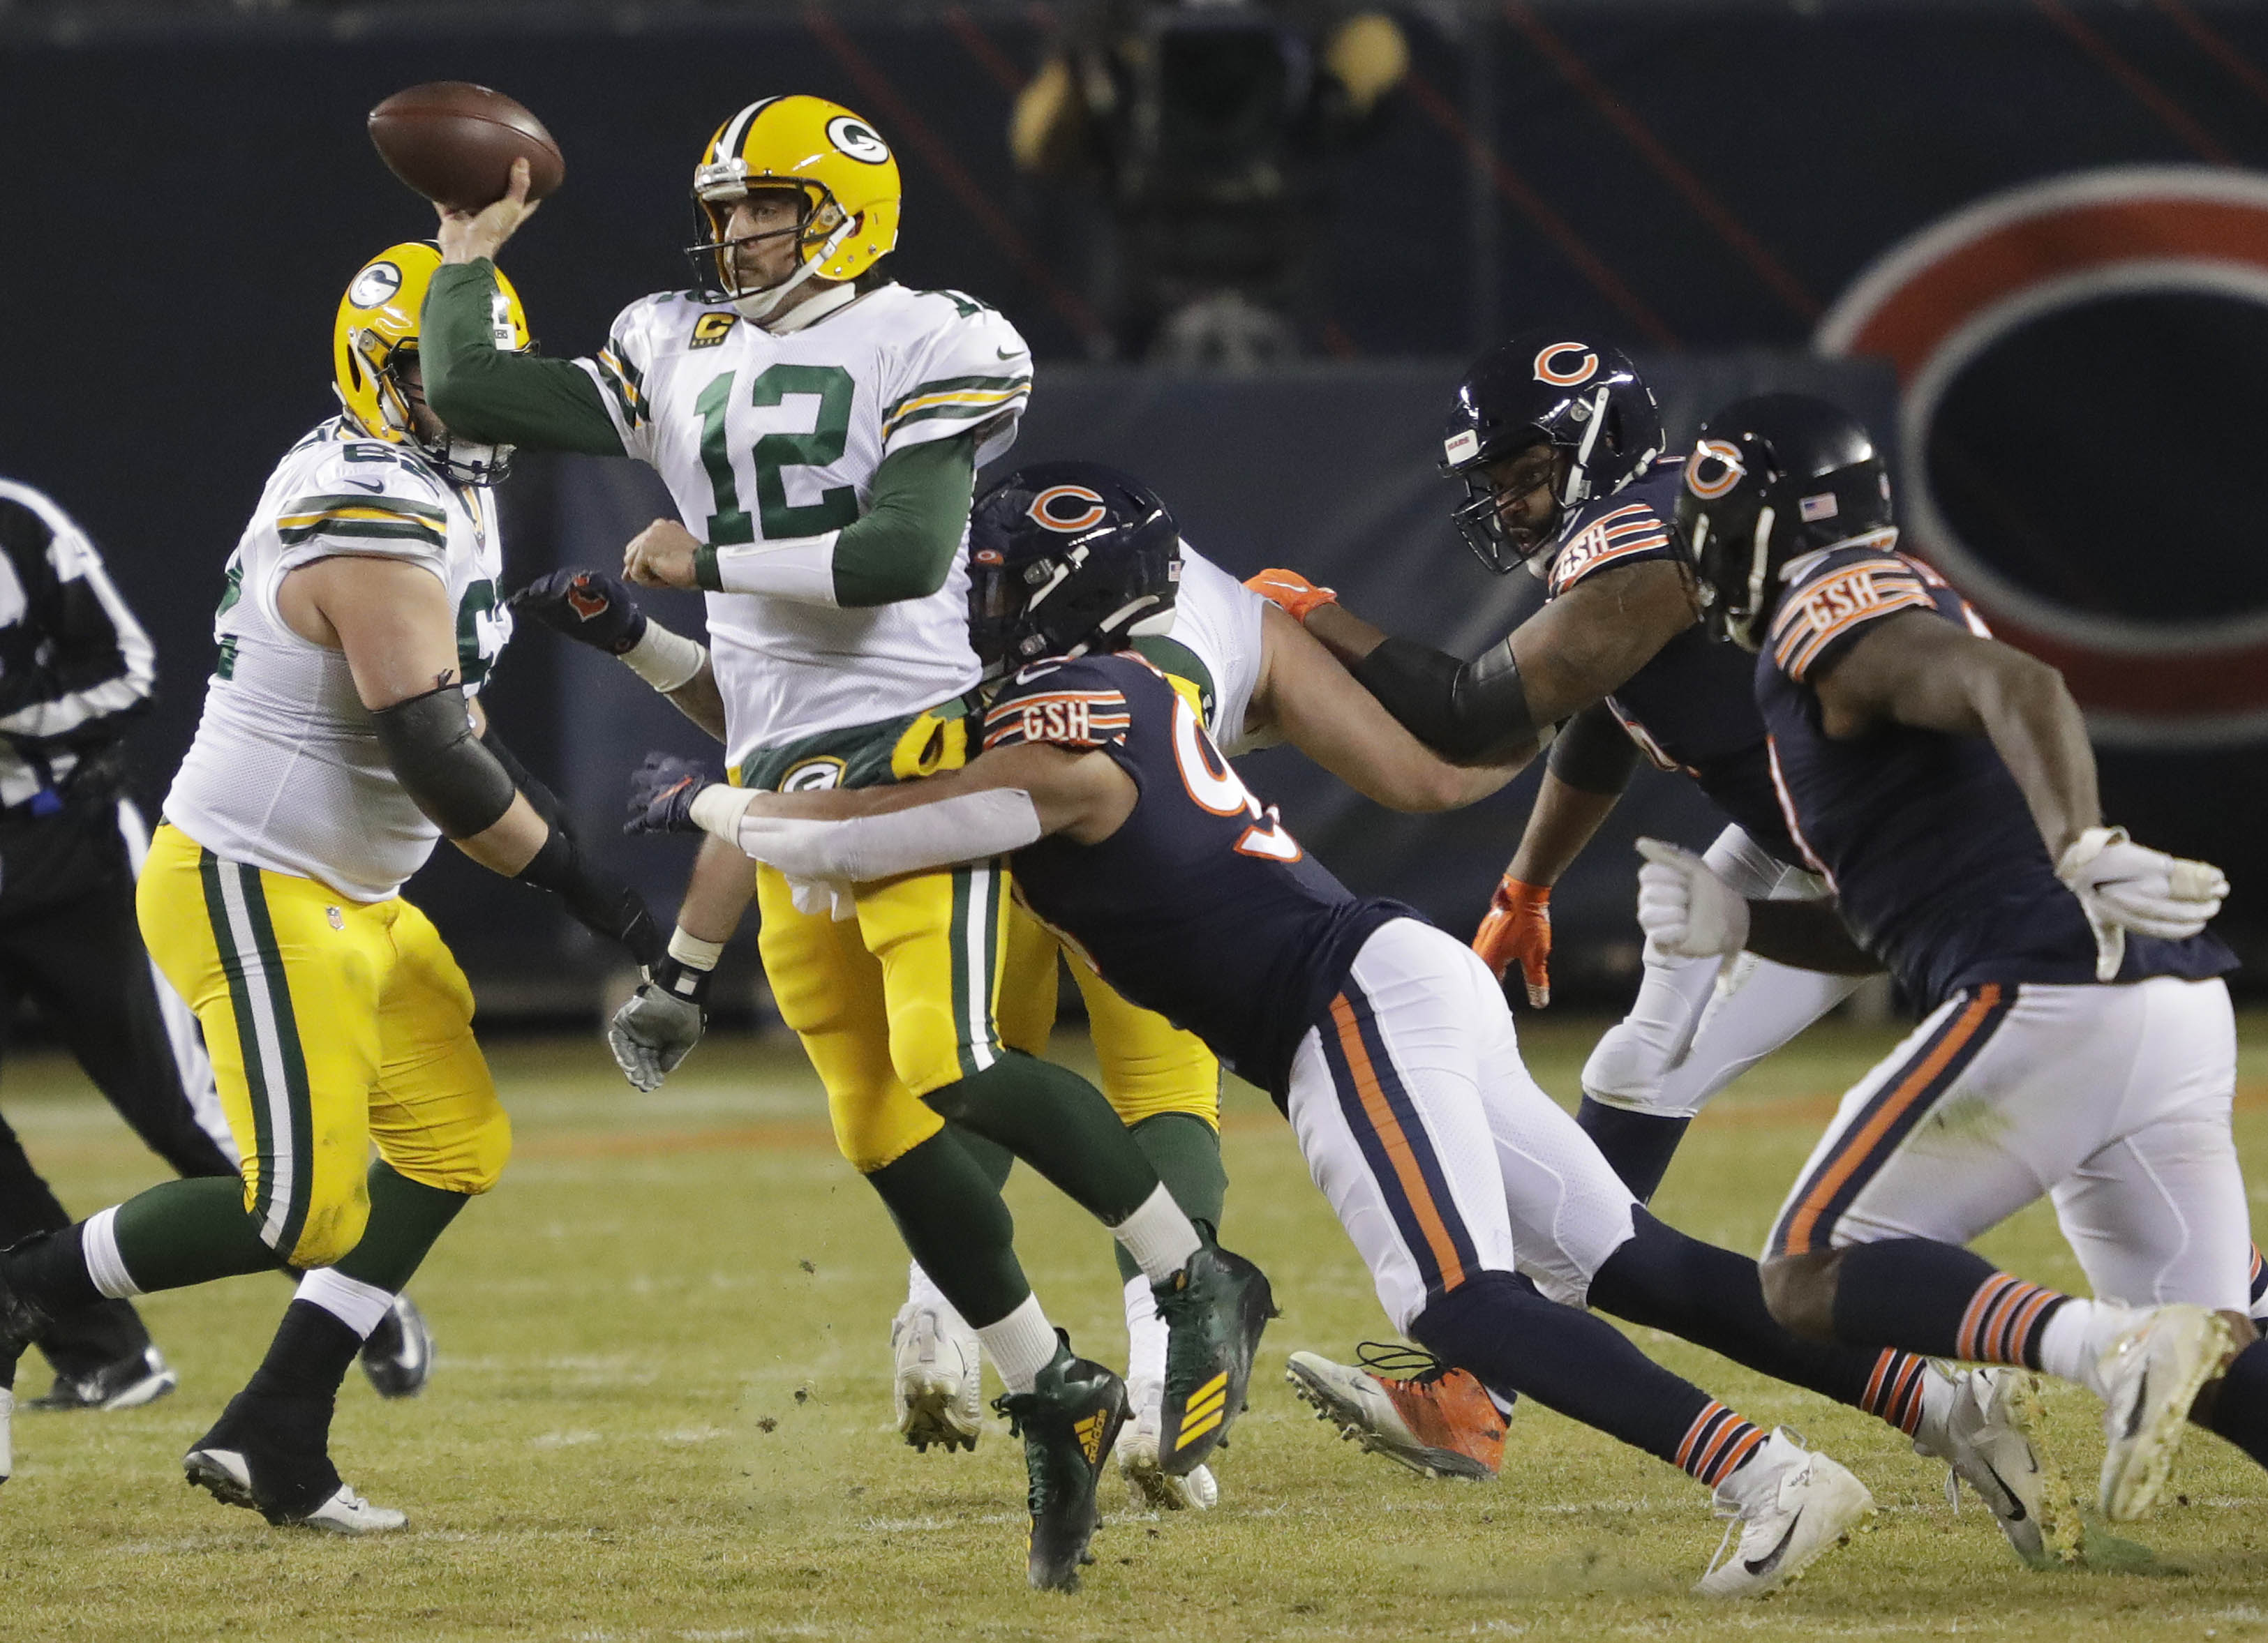 Green Bay Packers quarterback Aaron Rodgers (12) passes the ball under pressure from Chicago Bears linebacker Trevis Gipson (99) during their football game Sunday, January 3, 2021, at Soldier Field in Chicago, Ill.